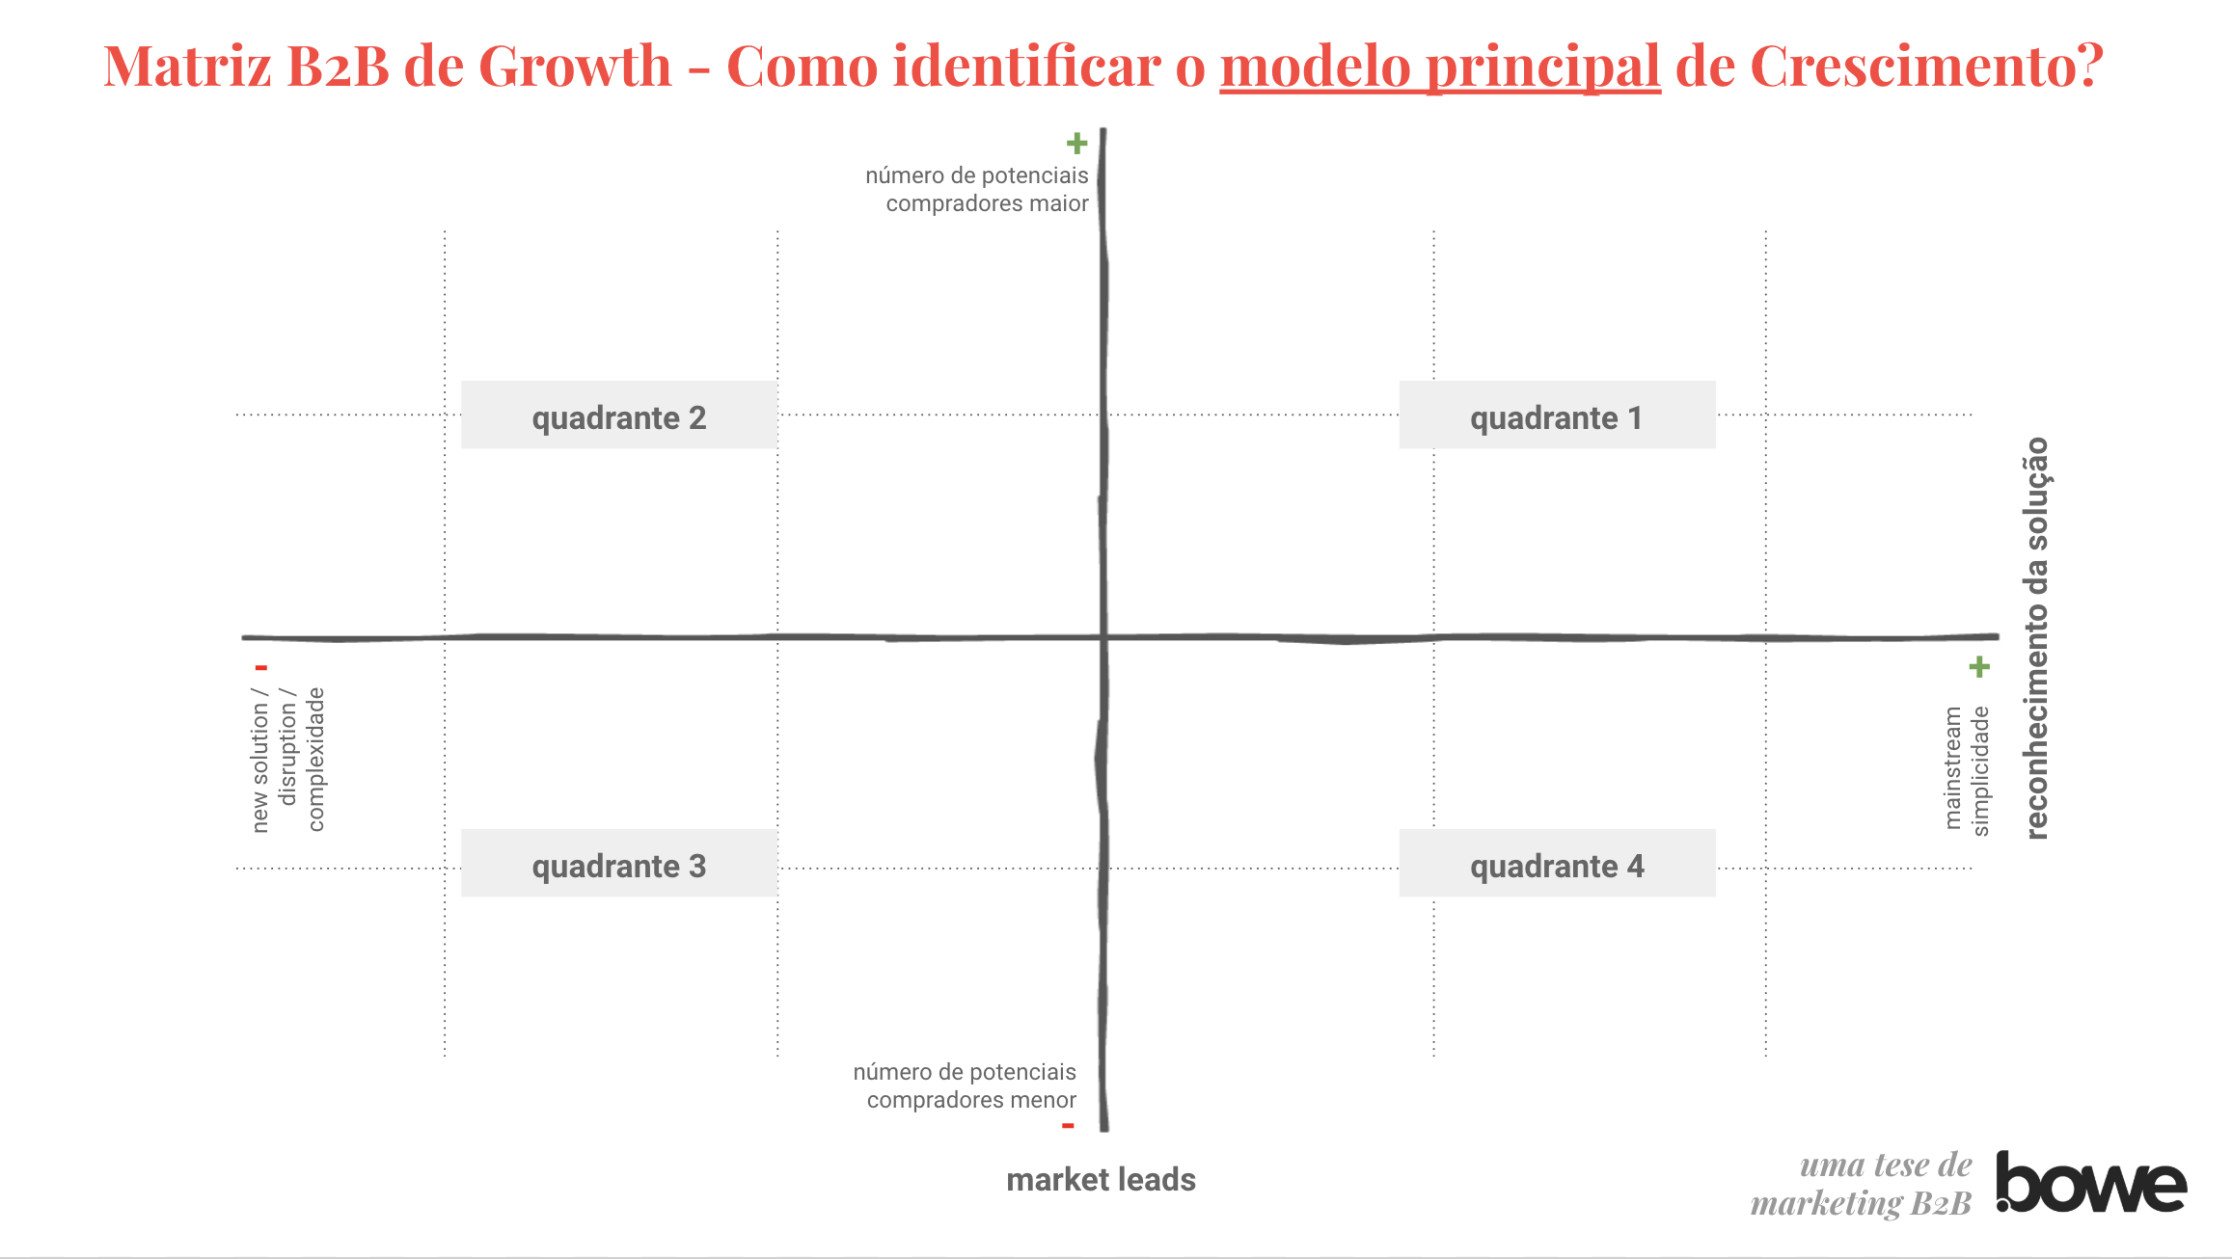 Matriz B2B de Growth